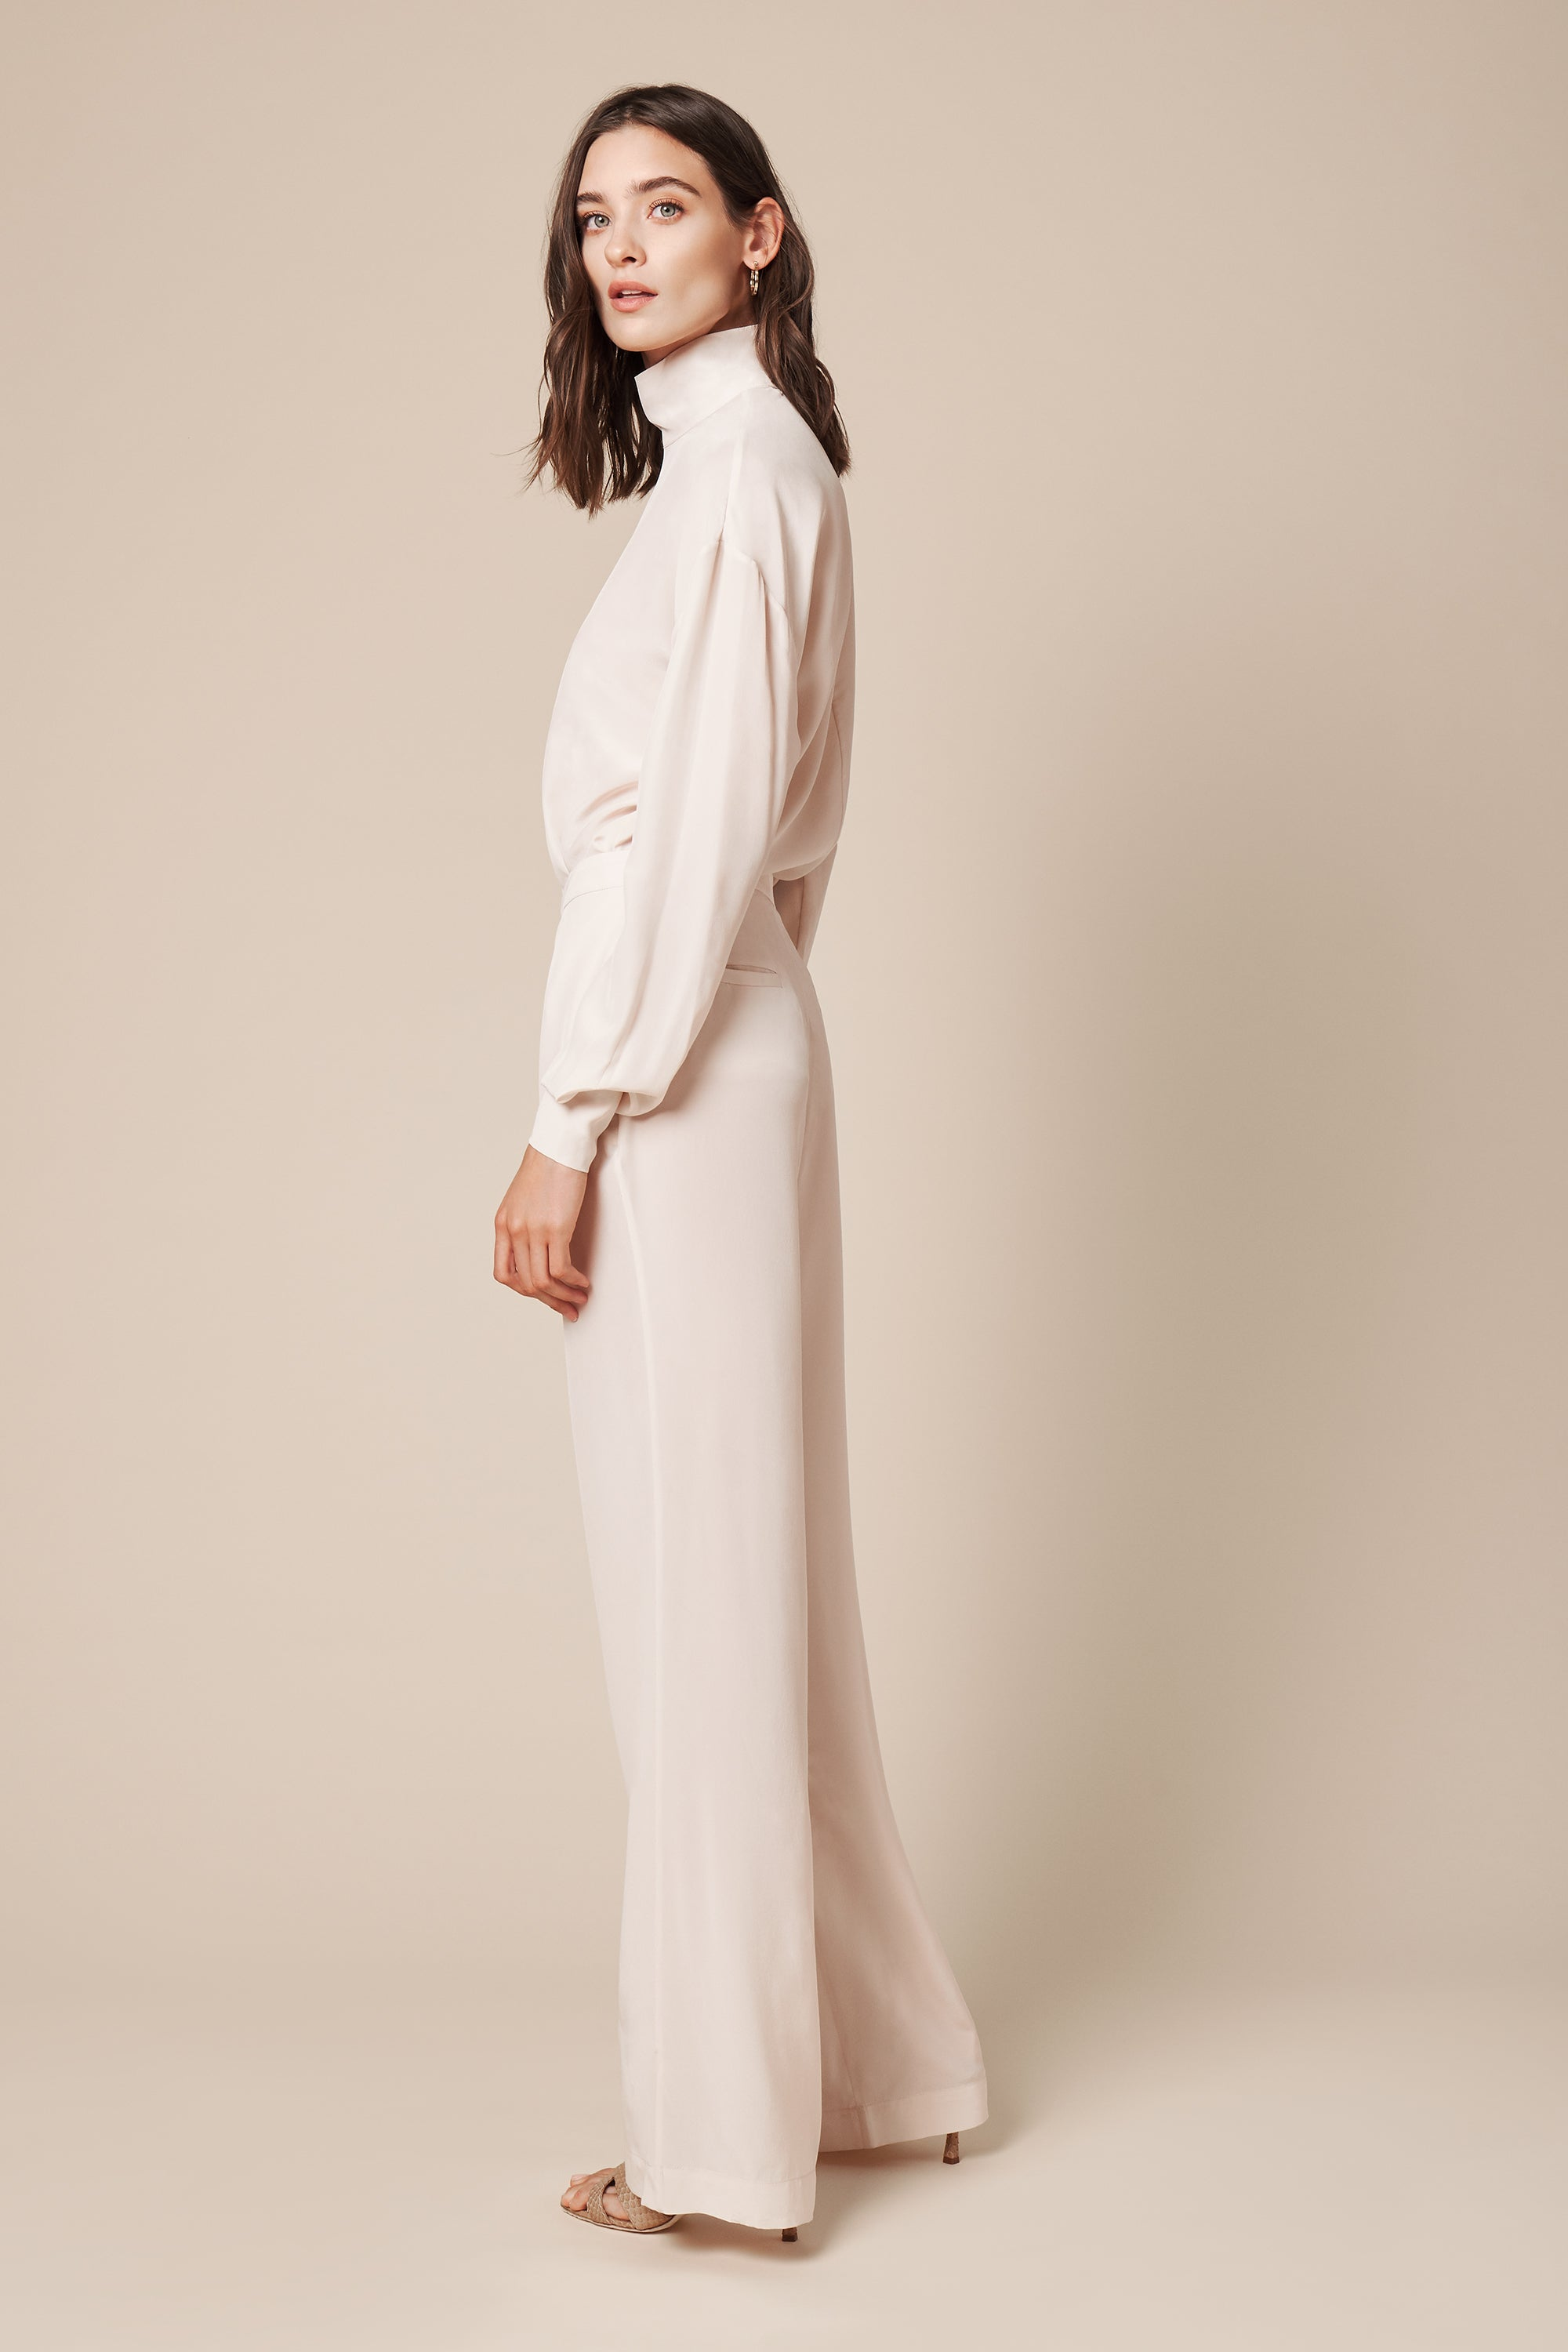 LINDA CREPE DE CHINE PANT | POWDER - FINAL SALE